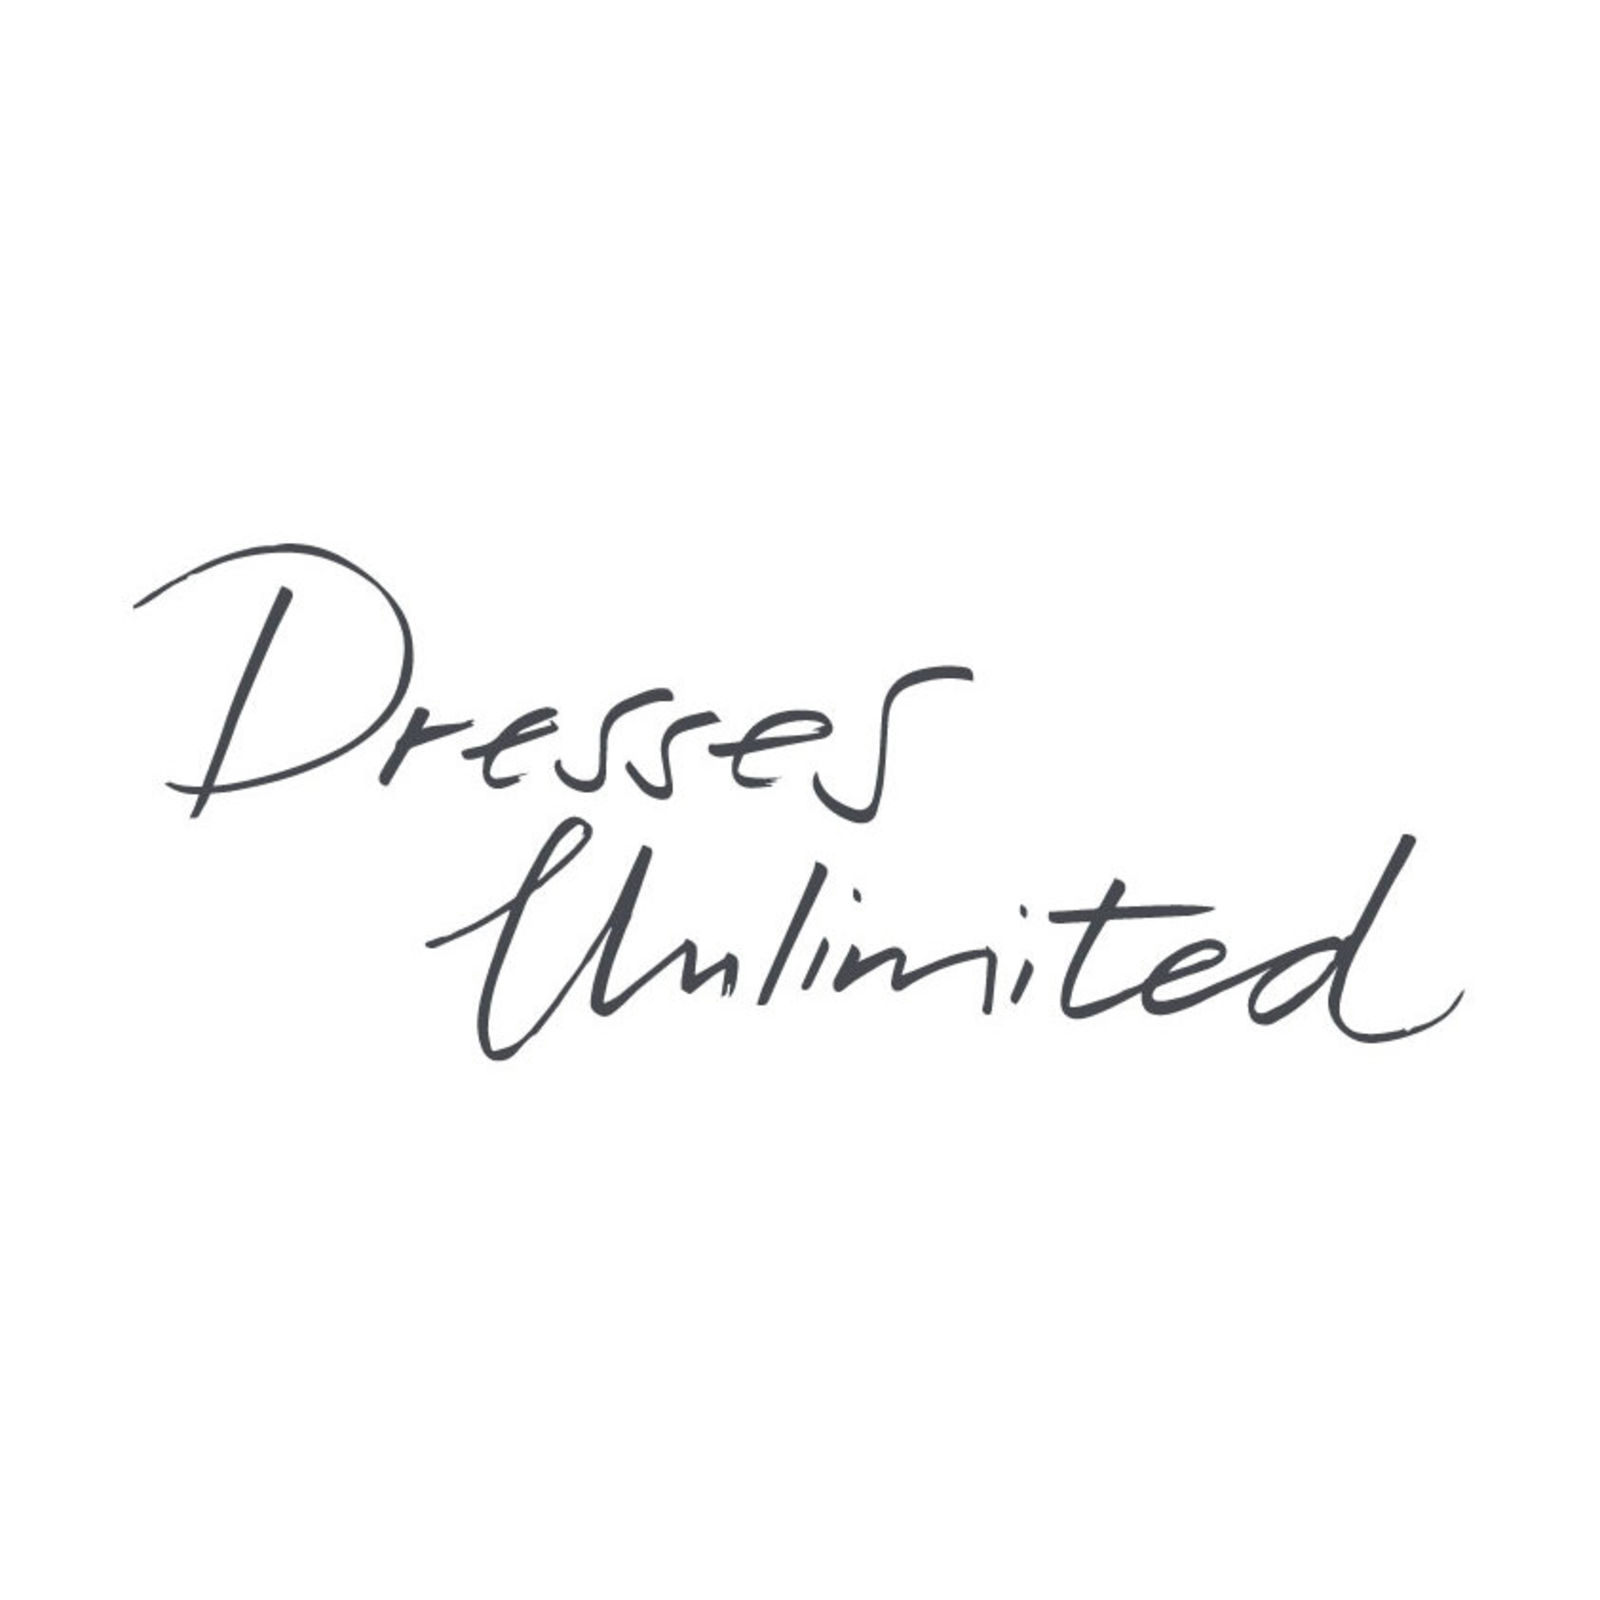 dresses unlimited